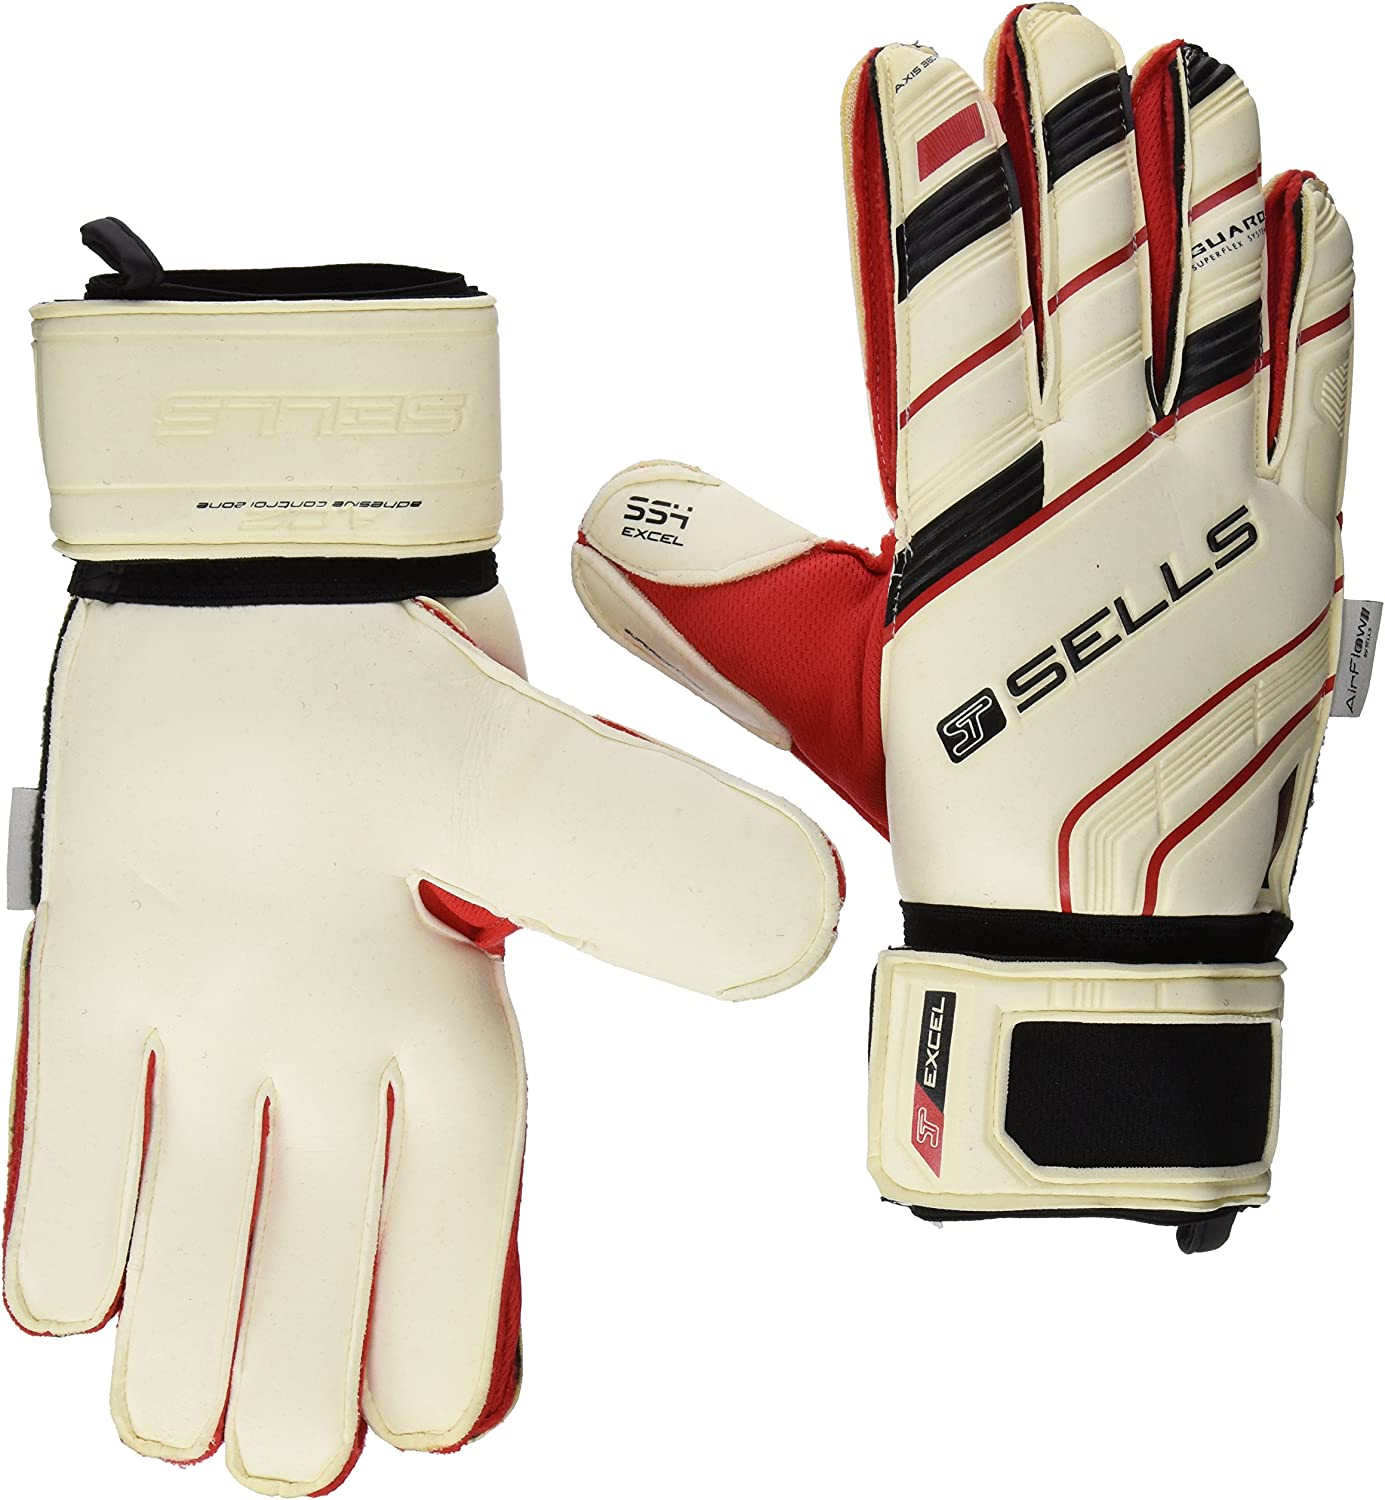 Sells Goalkeeper Products Wrap Axis Goalke Excel 360 Overseas parallel import regular item Supersoft 4 Popular brand in the world